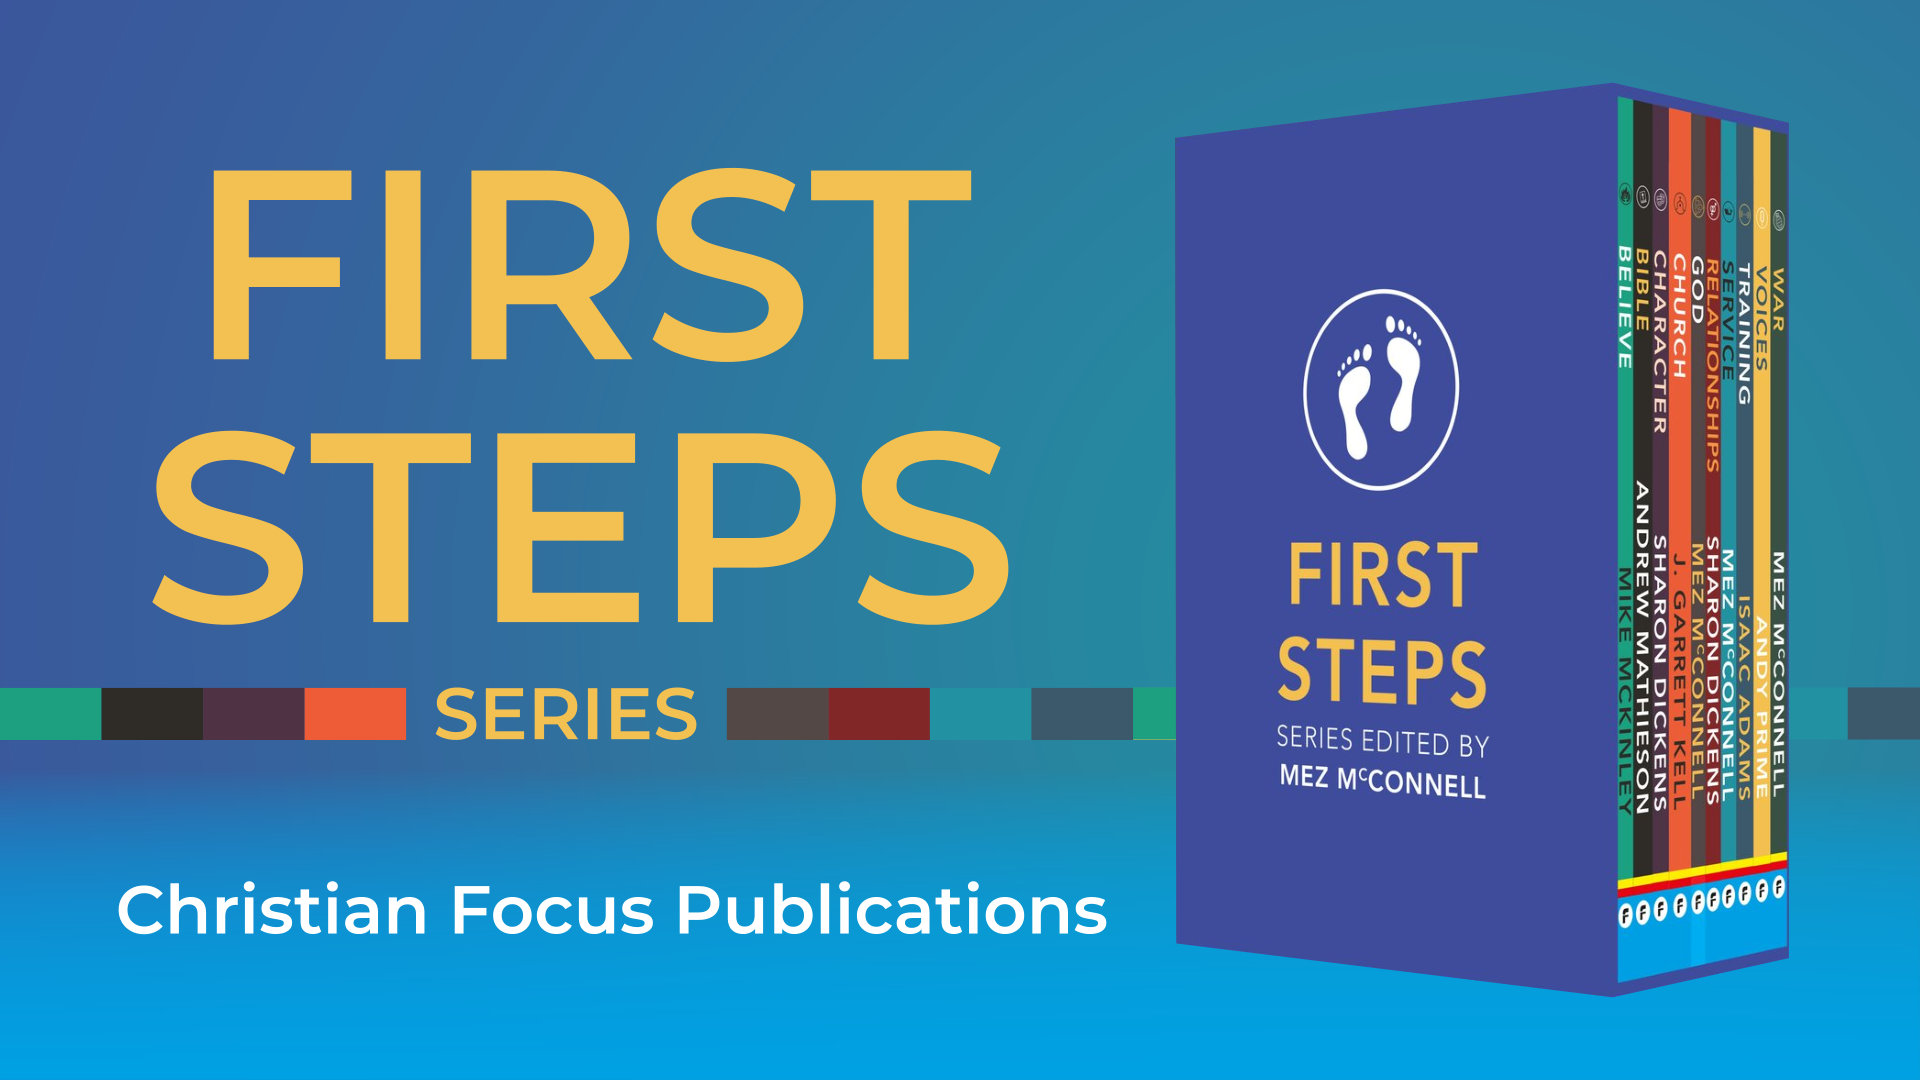 Christian Focus Publications - First Step Series